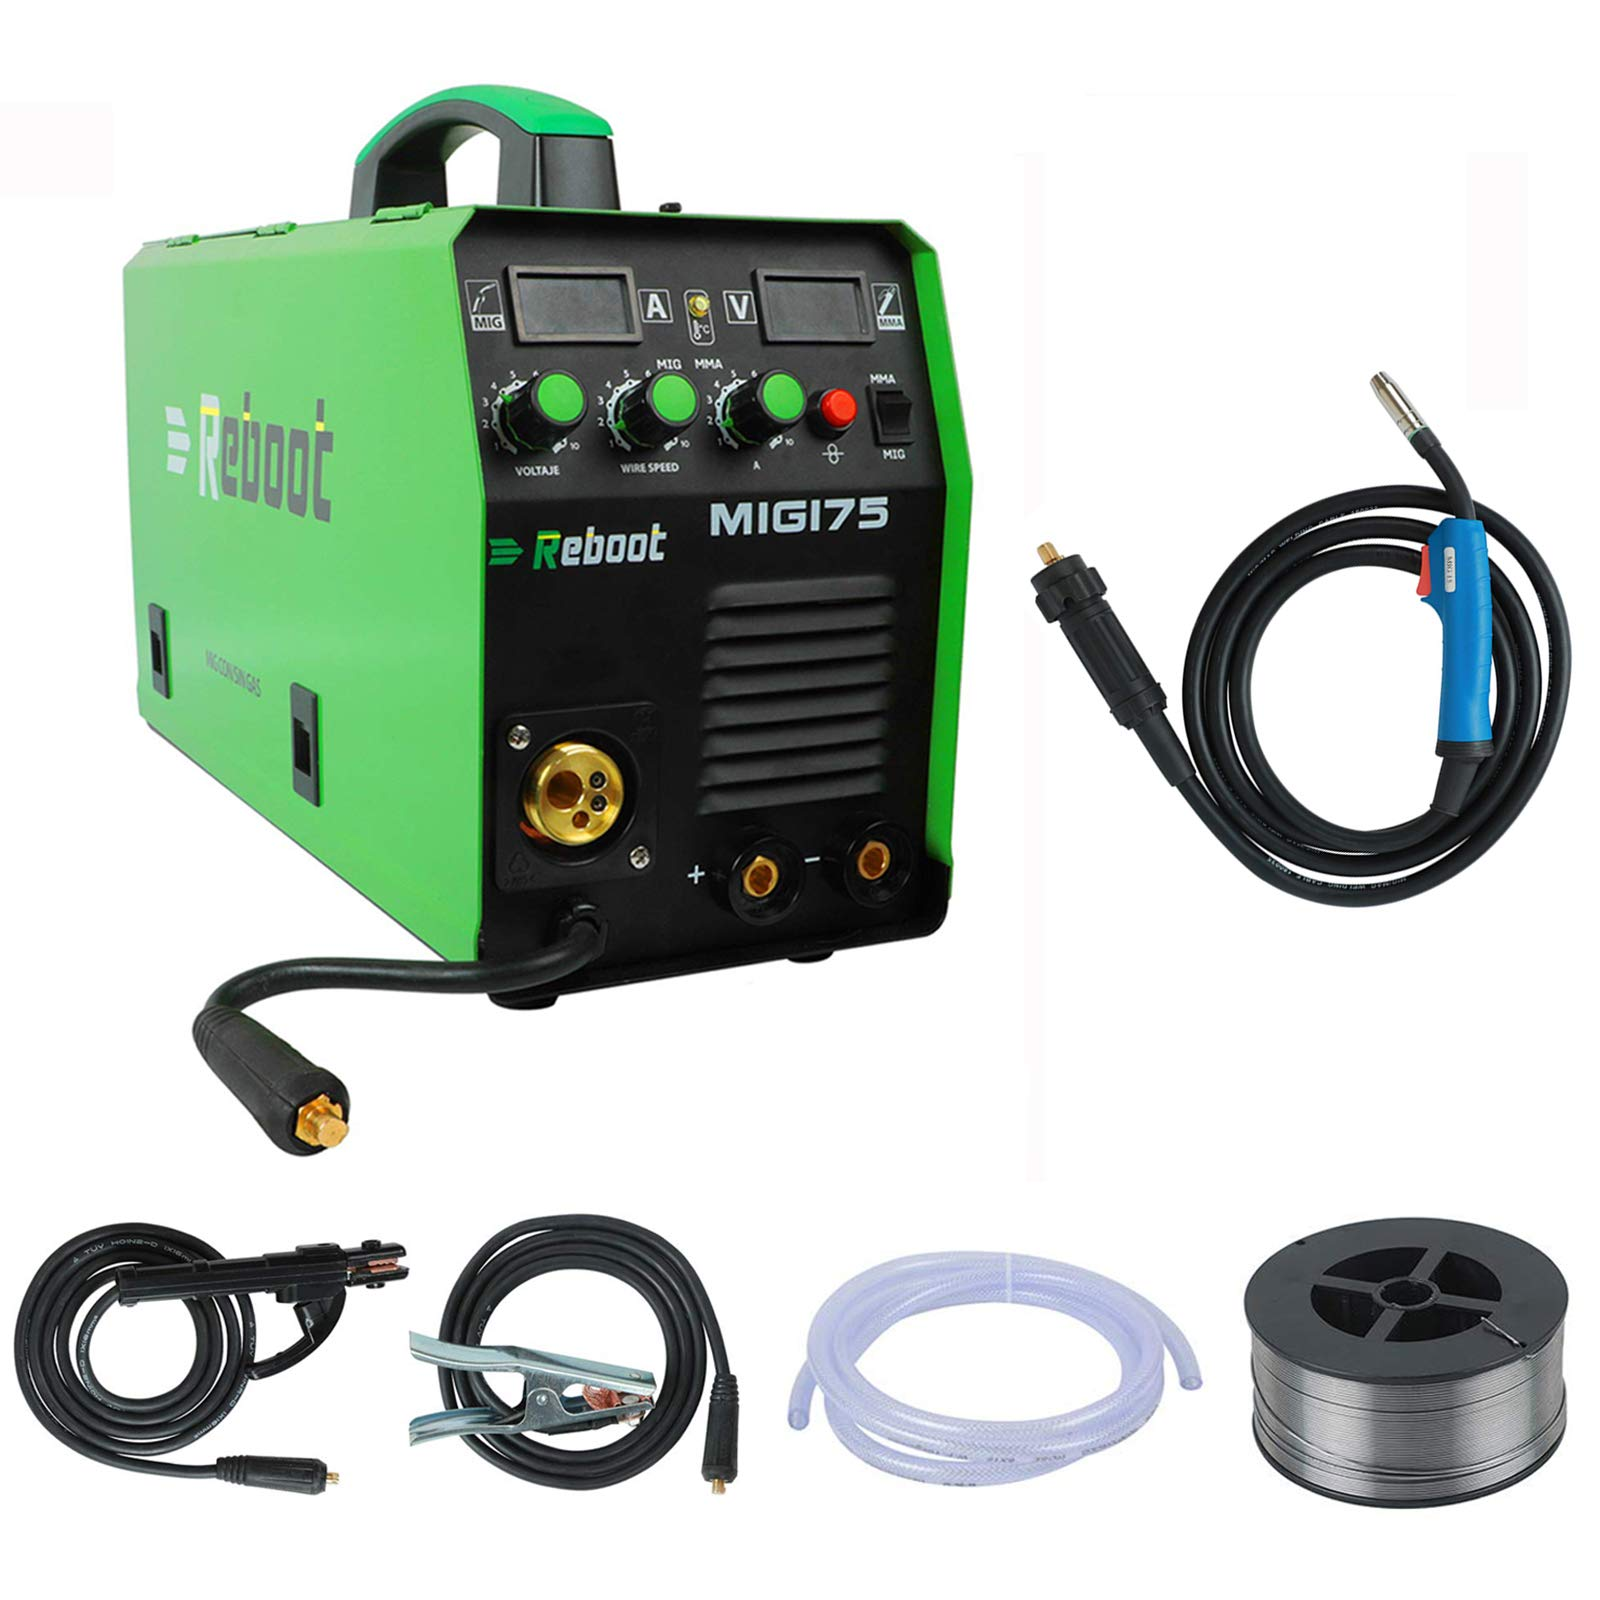 REBOOT MIG Welder MIG-175 Gas/Gasless DC 220V 1KG/5KG 2 in 1 Flux Core Wire and Solid Wire IGBT Inverter Welding Machine High Duty Cycle Stick Welder for Home DIY Stainless steel,Mild Steel,Aluminum by Reboot